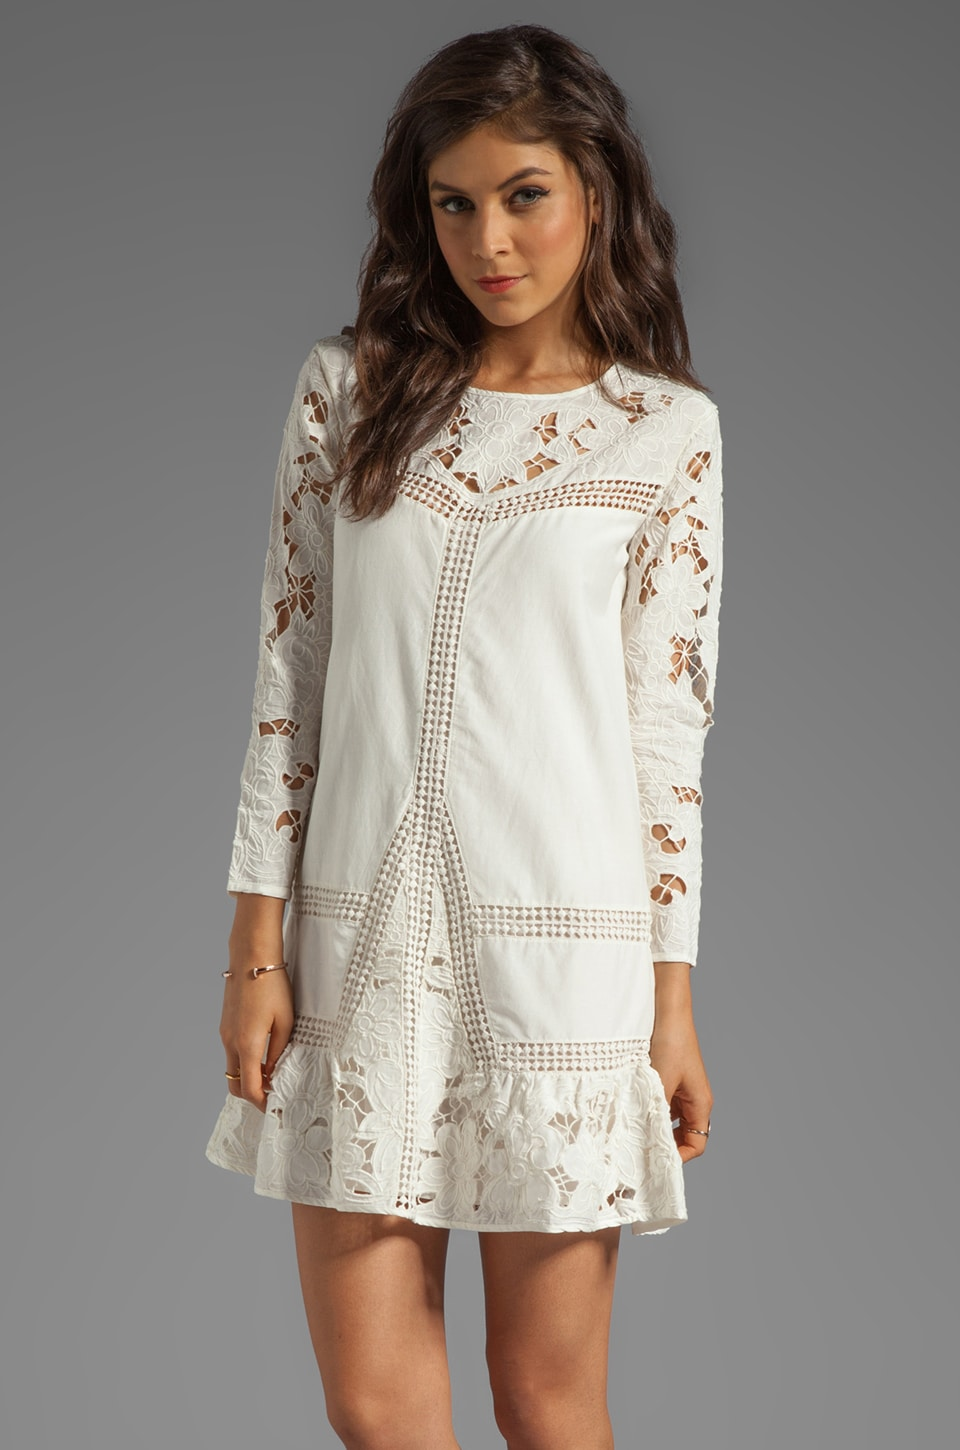 Juicy Couture Romantic Lace Dress in Angel